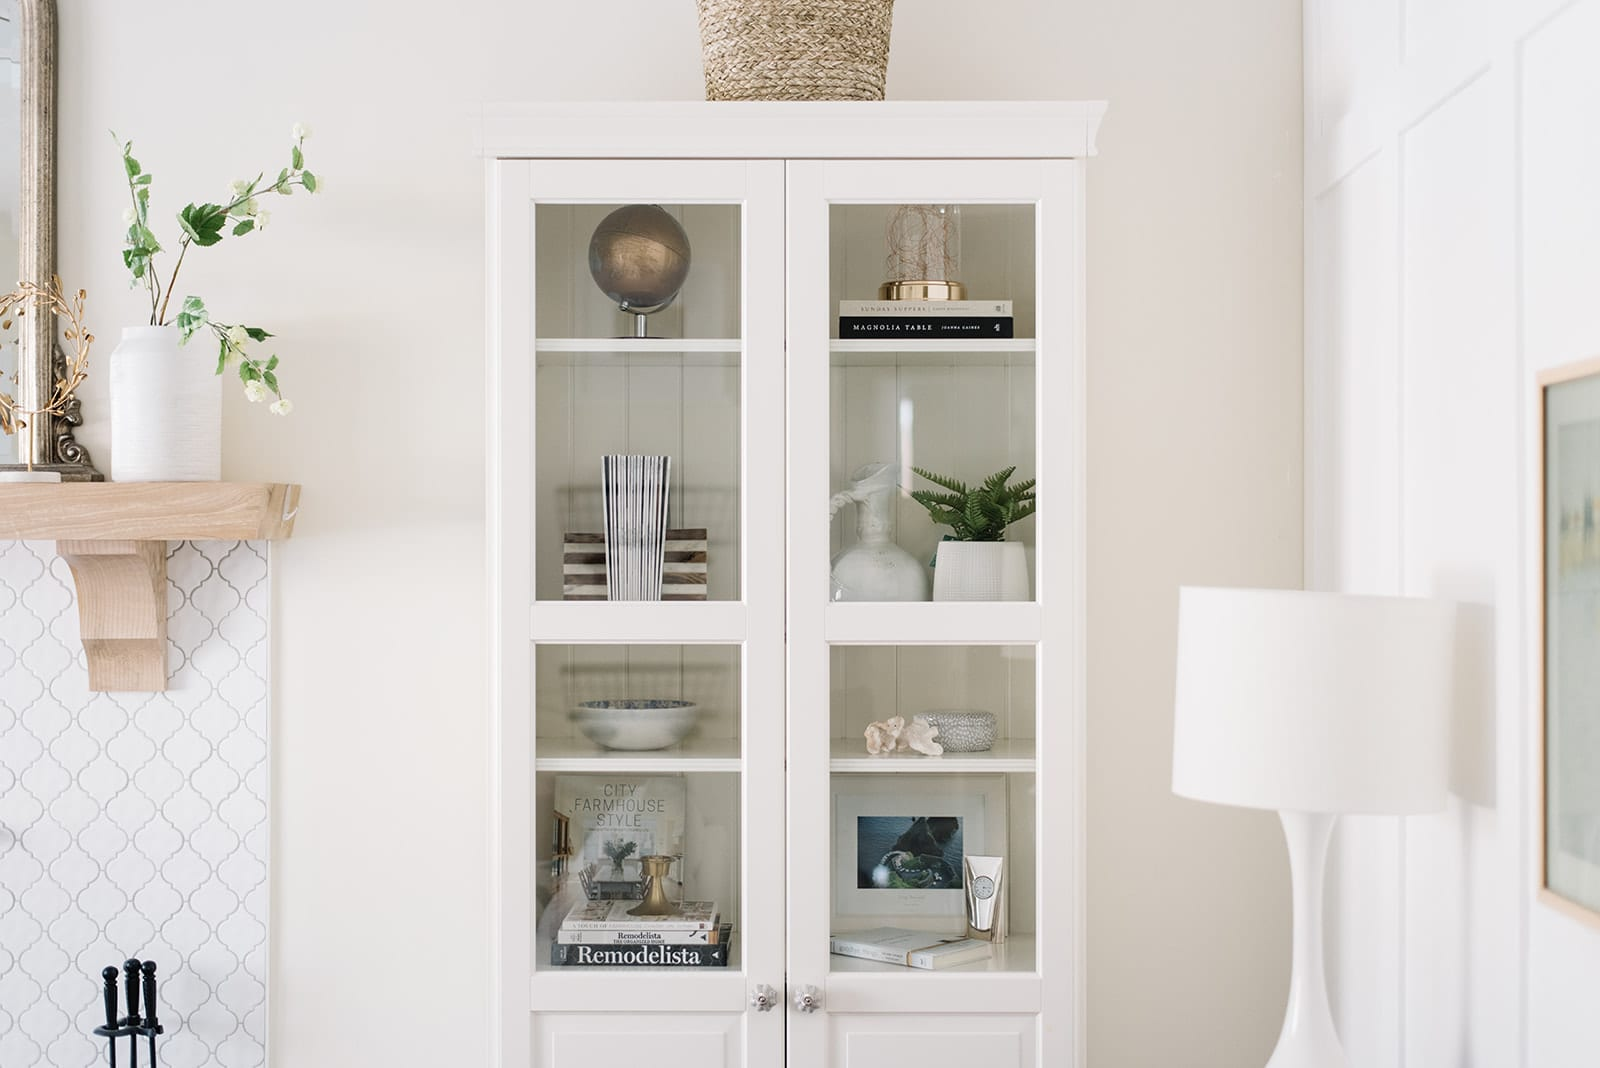 How to style a bookcase - keep it simple and follow the guiding principles of space, unity, and balance.